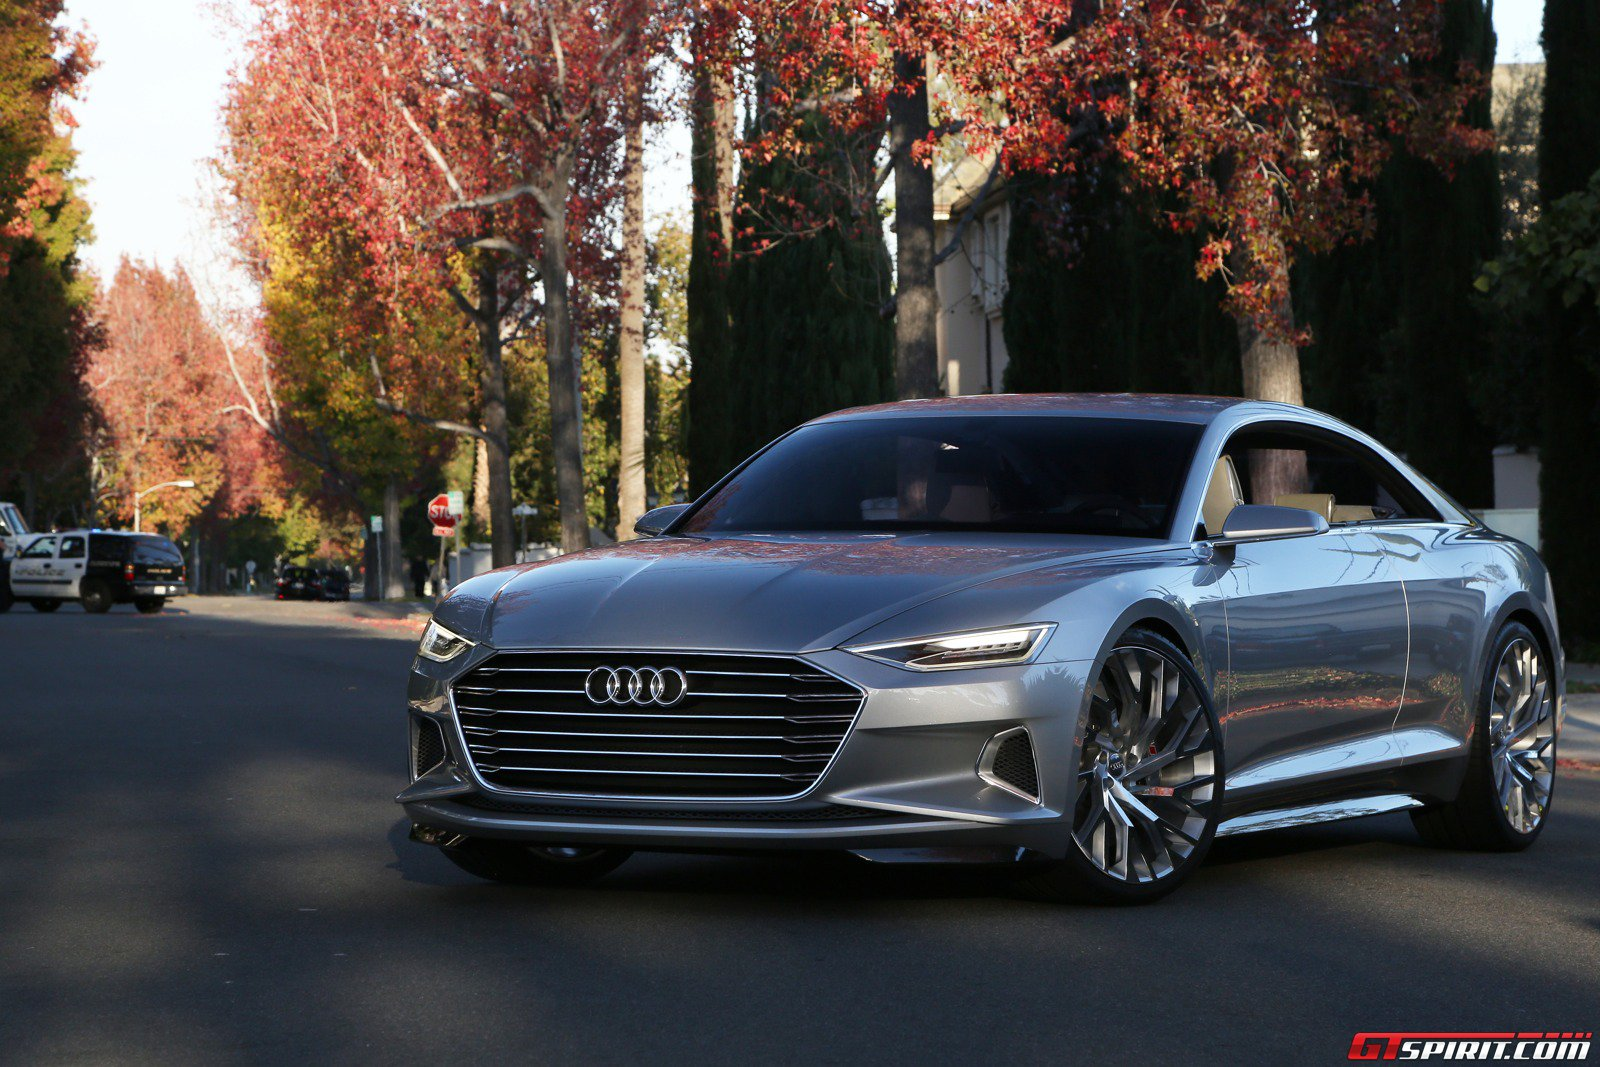 Next Generation Audi A8 Detailed